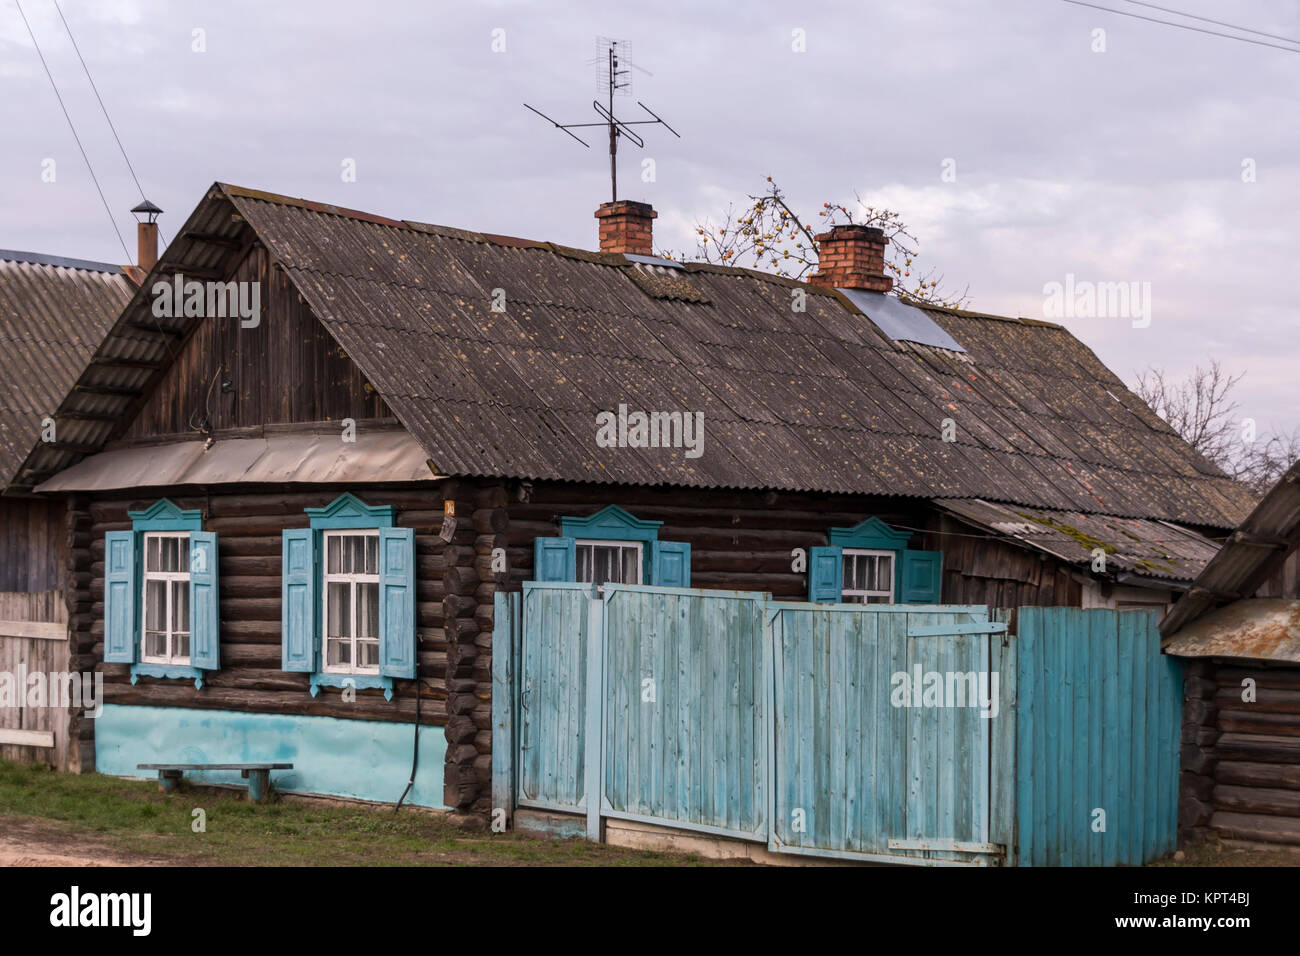 painted houses in belarus - Stock Image